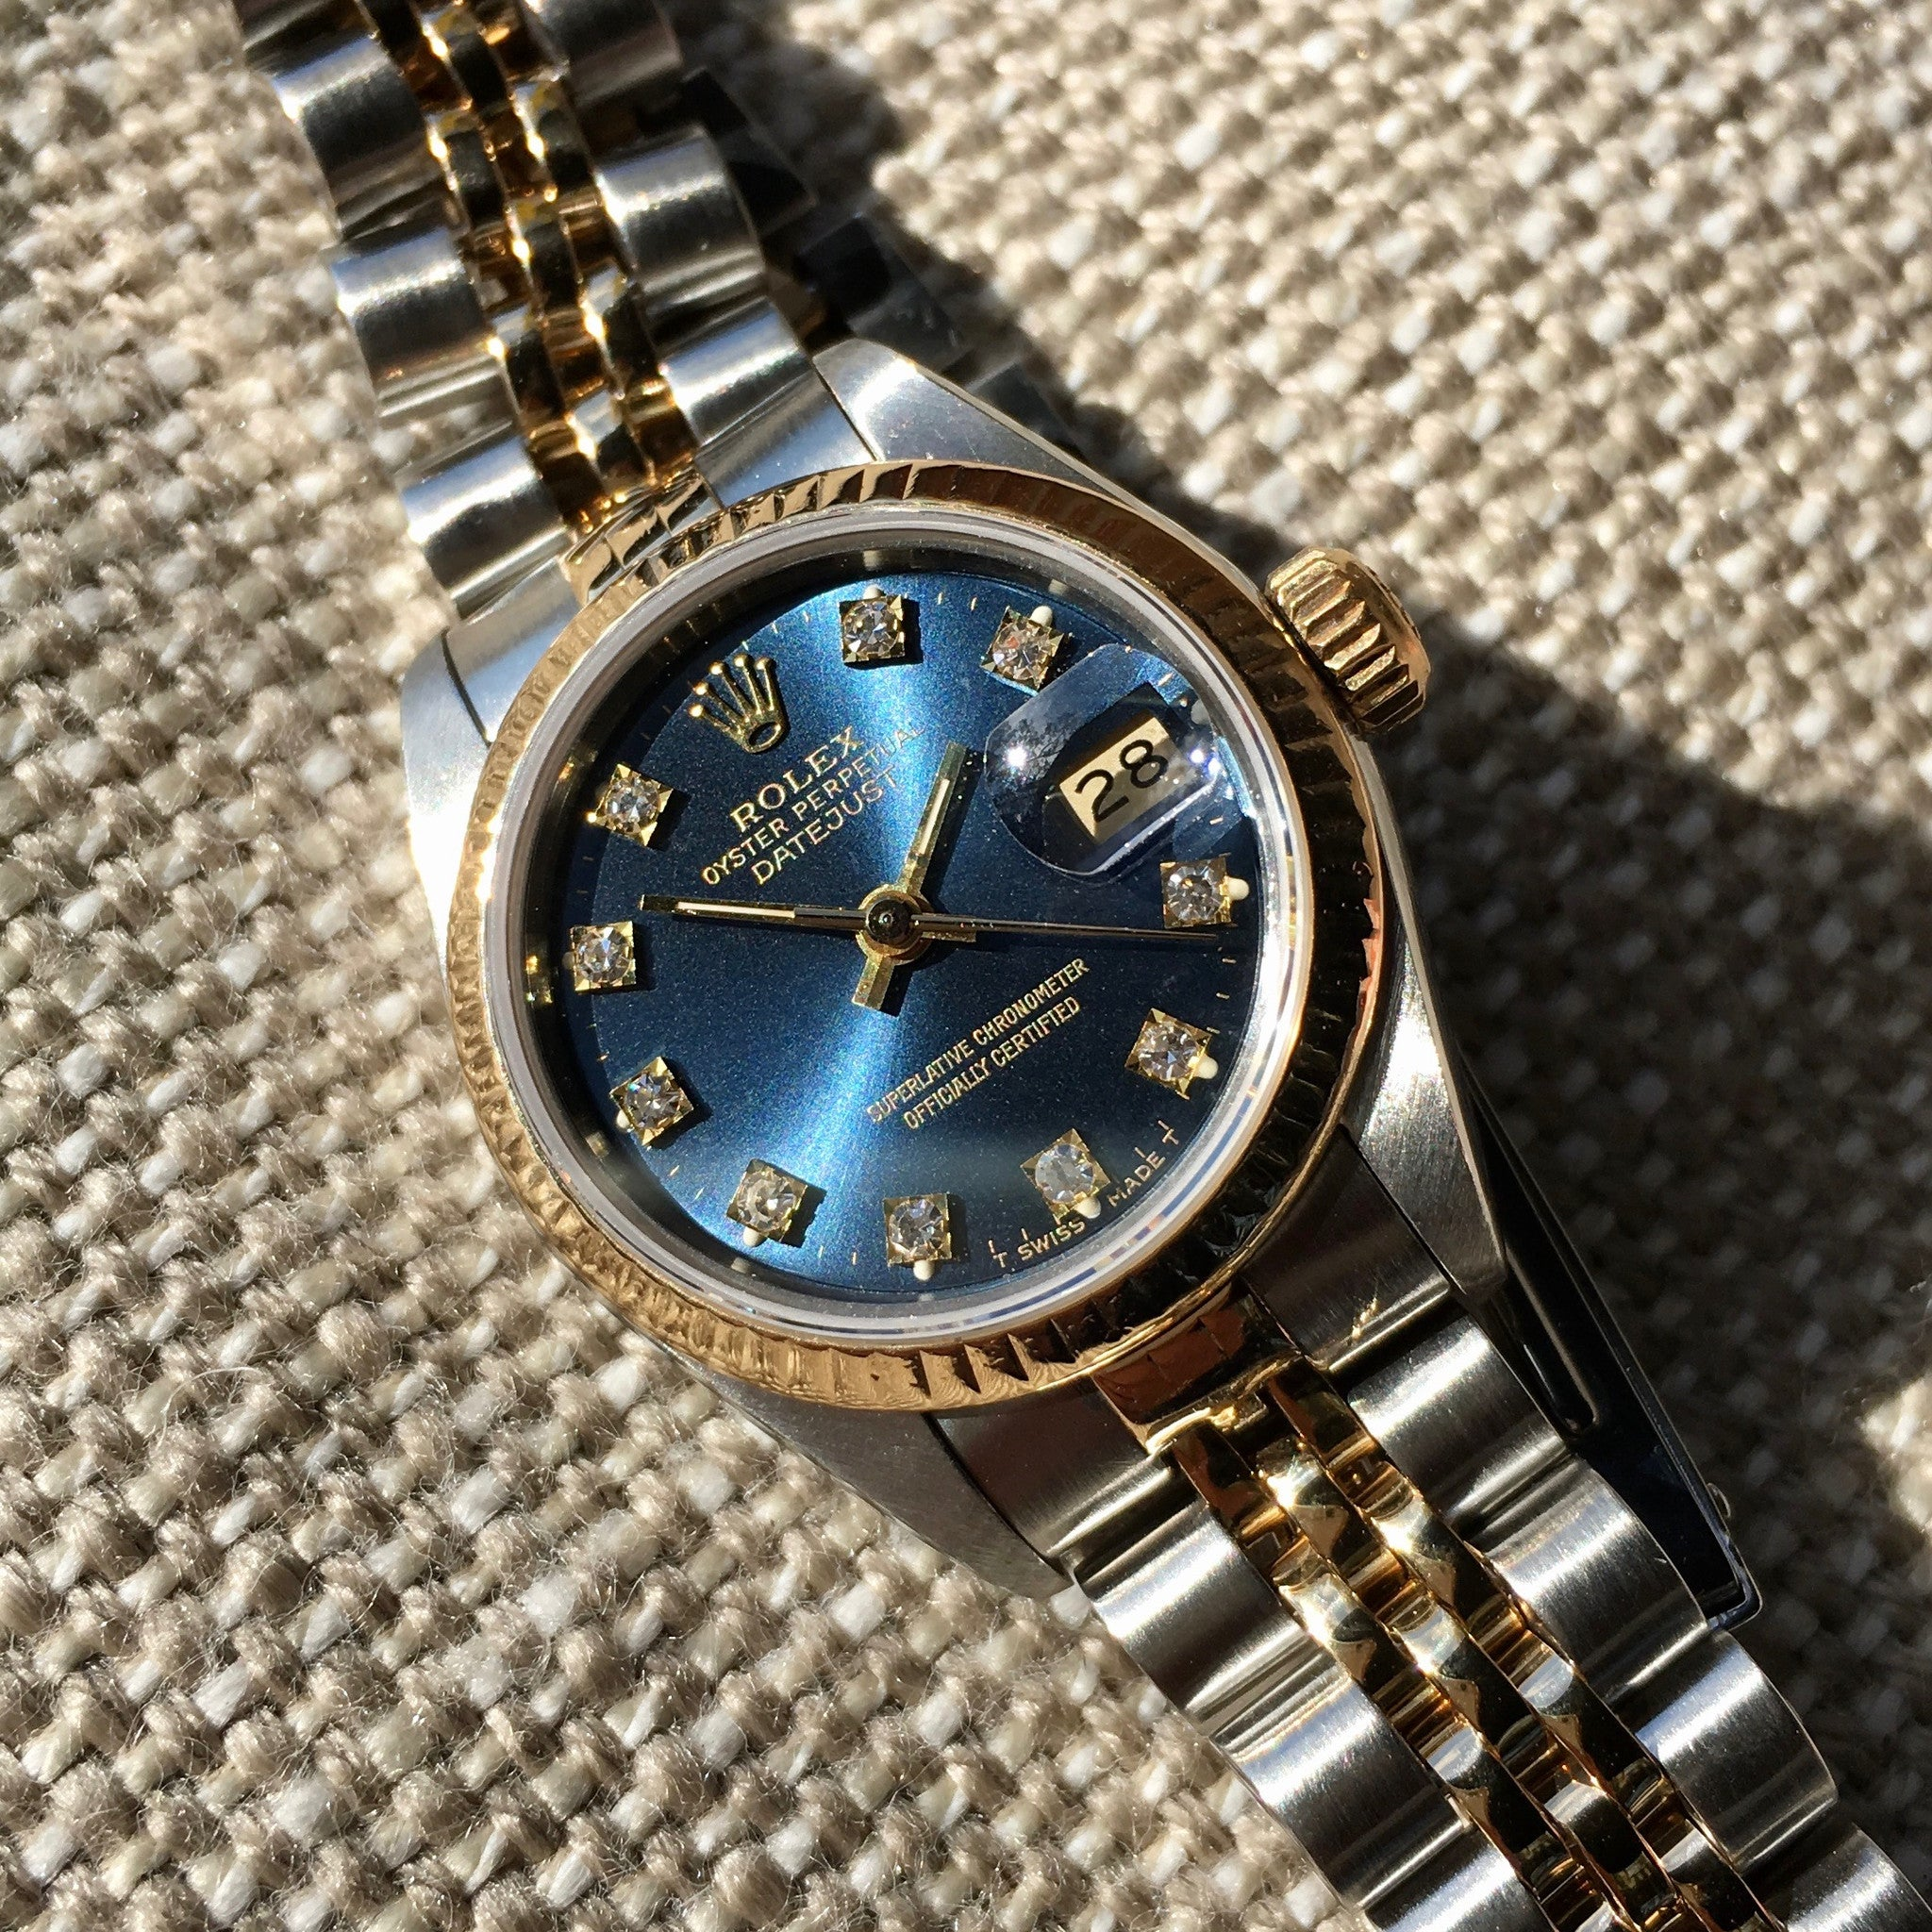 Rolex Ladies Datejust 69173 Two Tone Blue Diamond Dial Steel 18K Wristwatch - Hashtag Watch Company